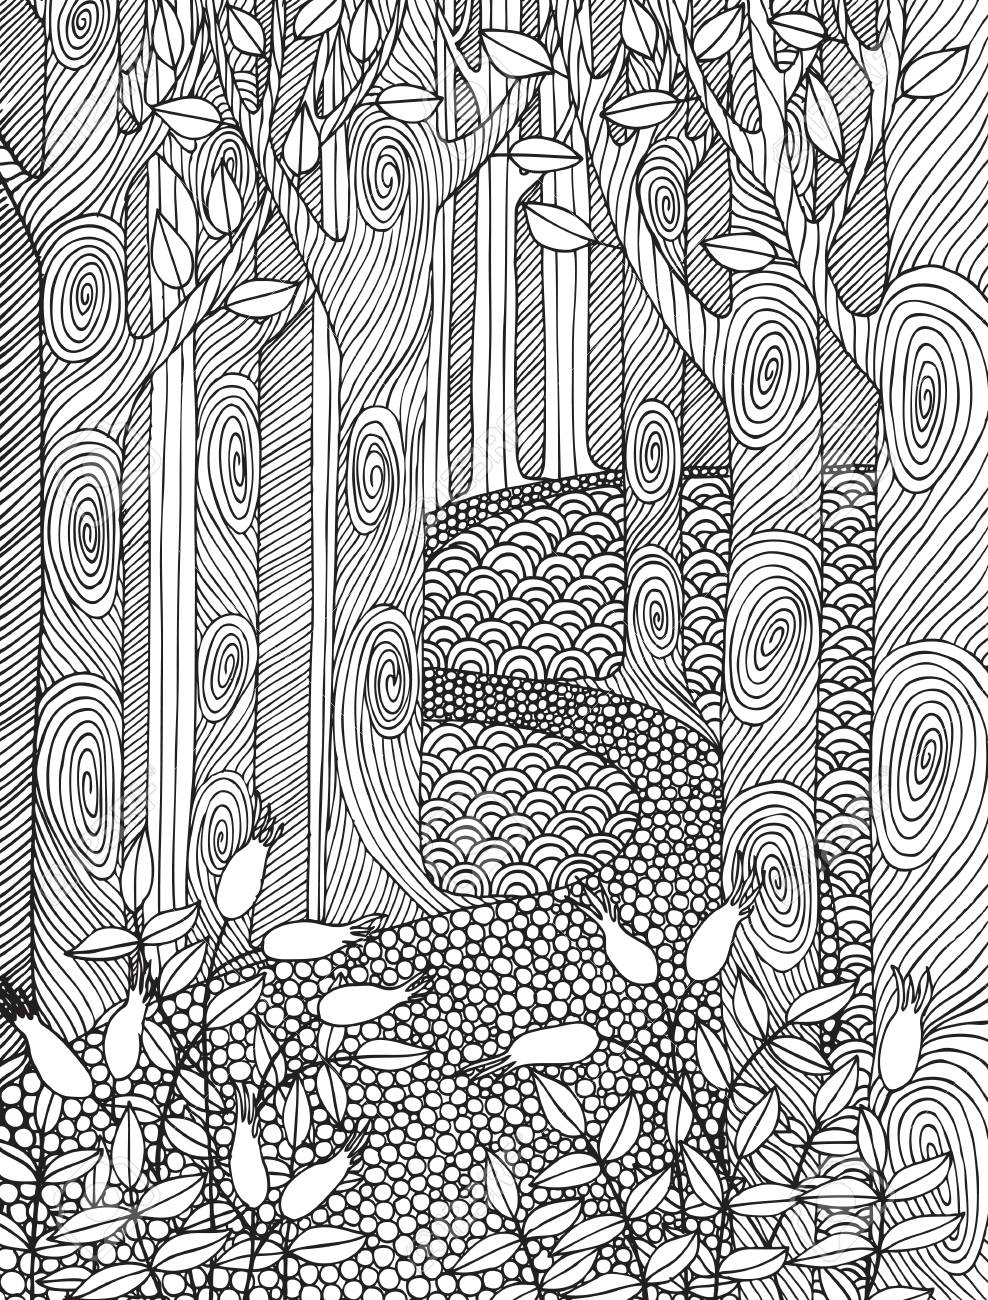 Adult Coloring Book Page Design With Forest Trees  Coloring Book